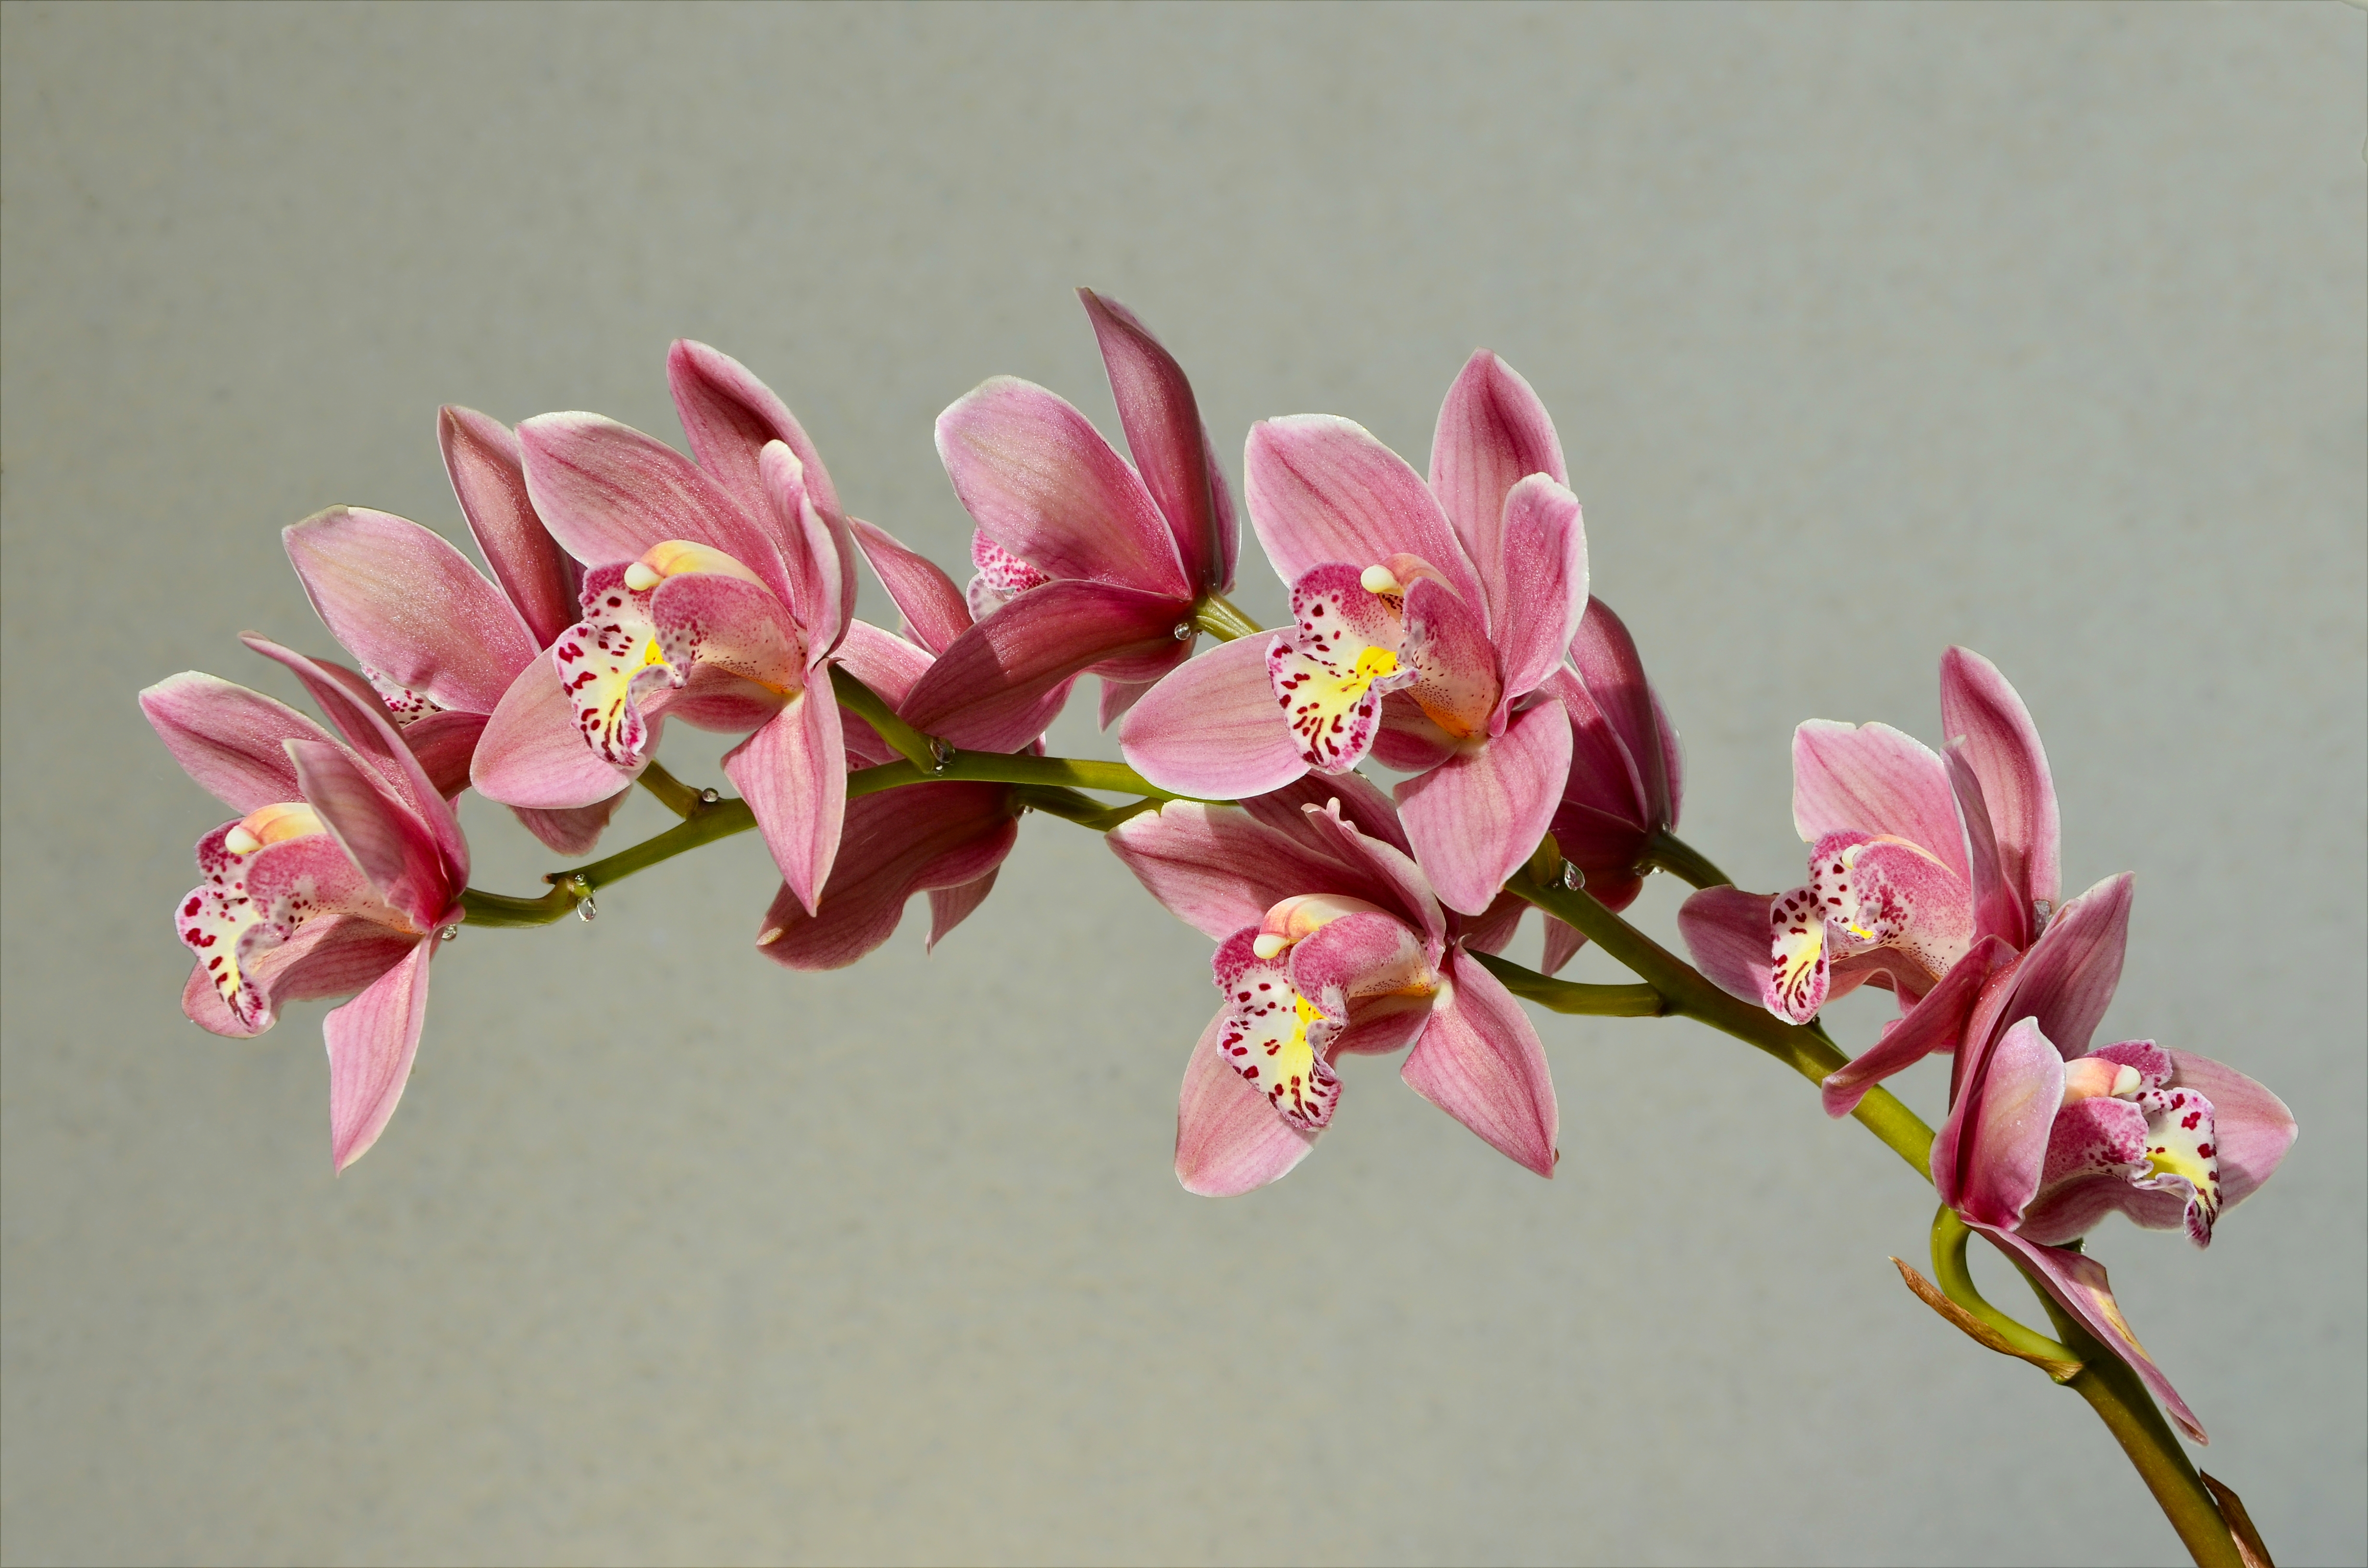 Cymbidium rose inflorescence FR 2014